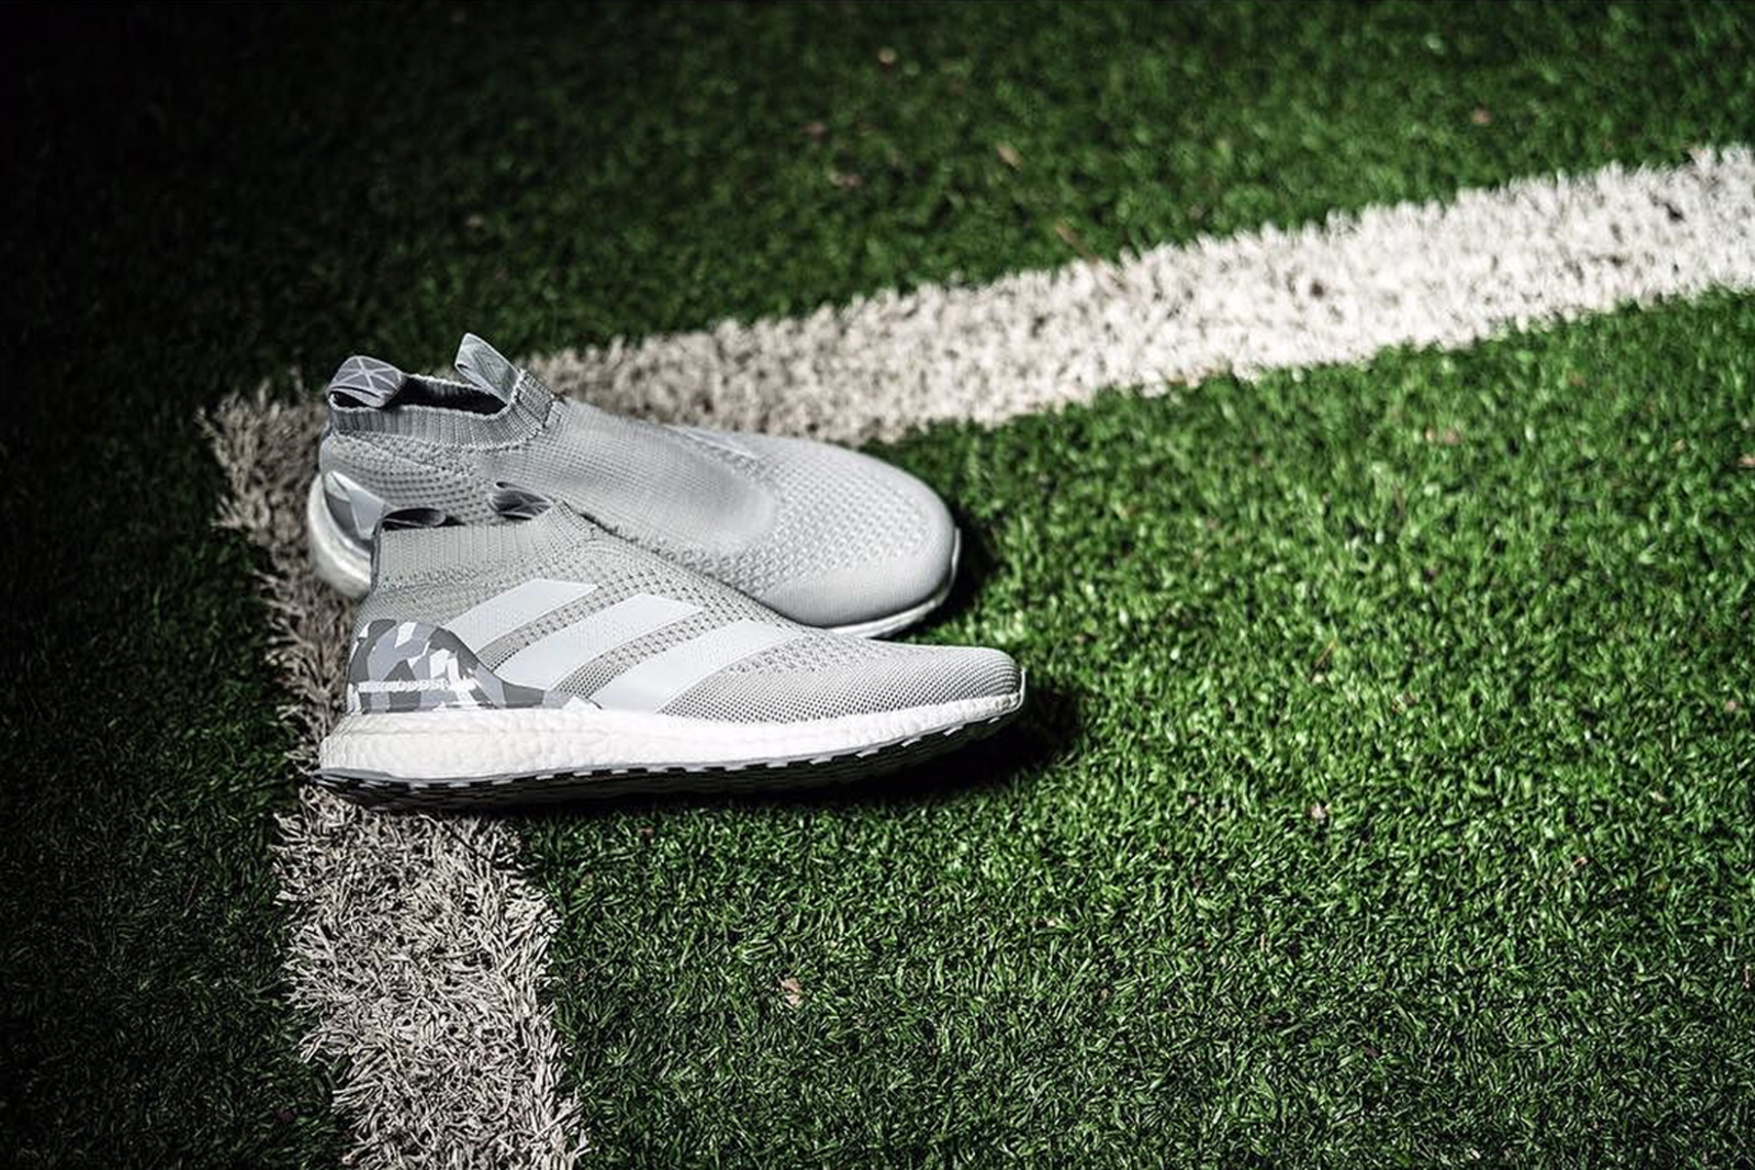 adidas-ace-16-purecontrol-ultraboost-gray-camouflage-1